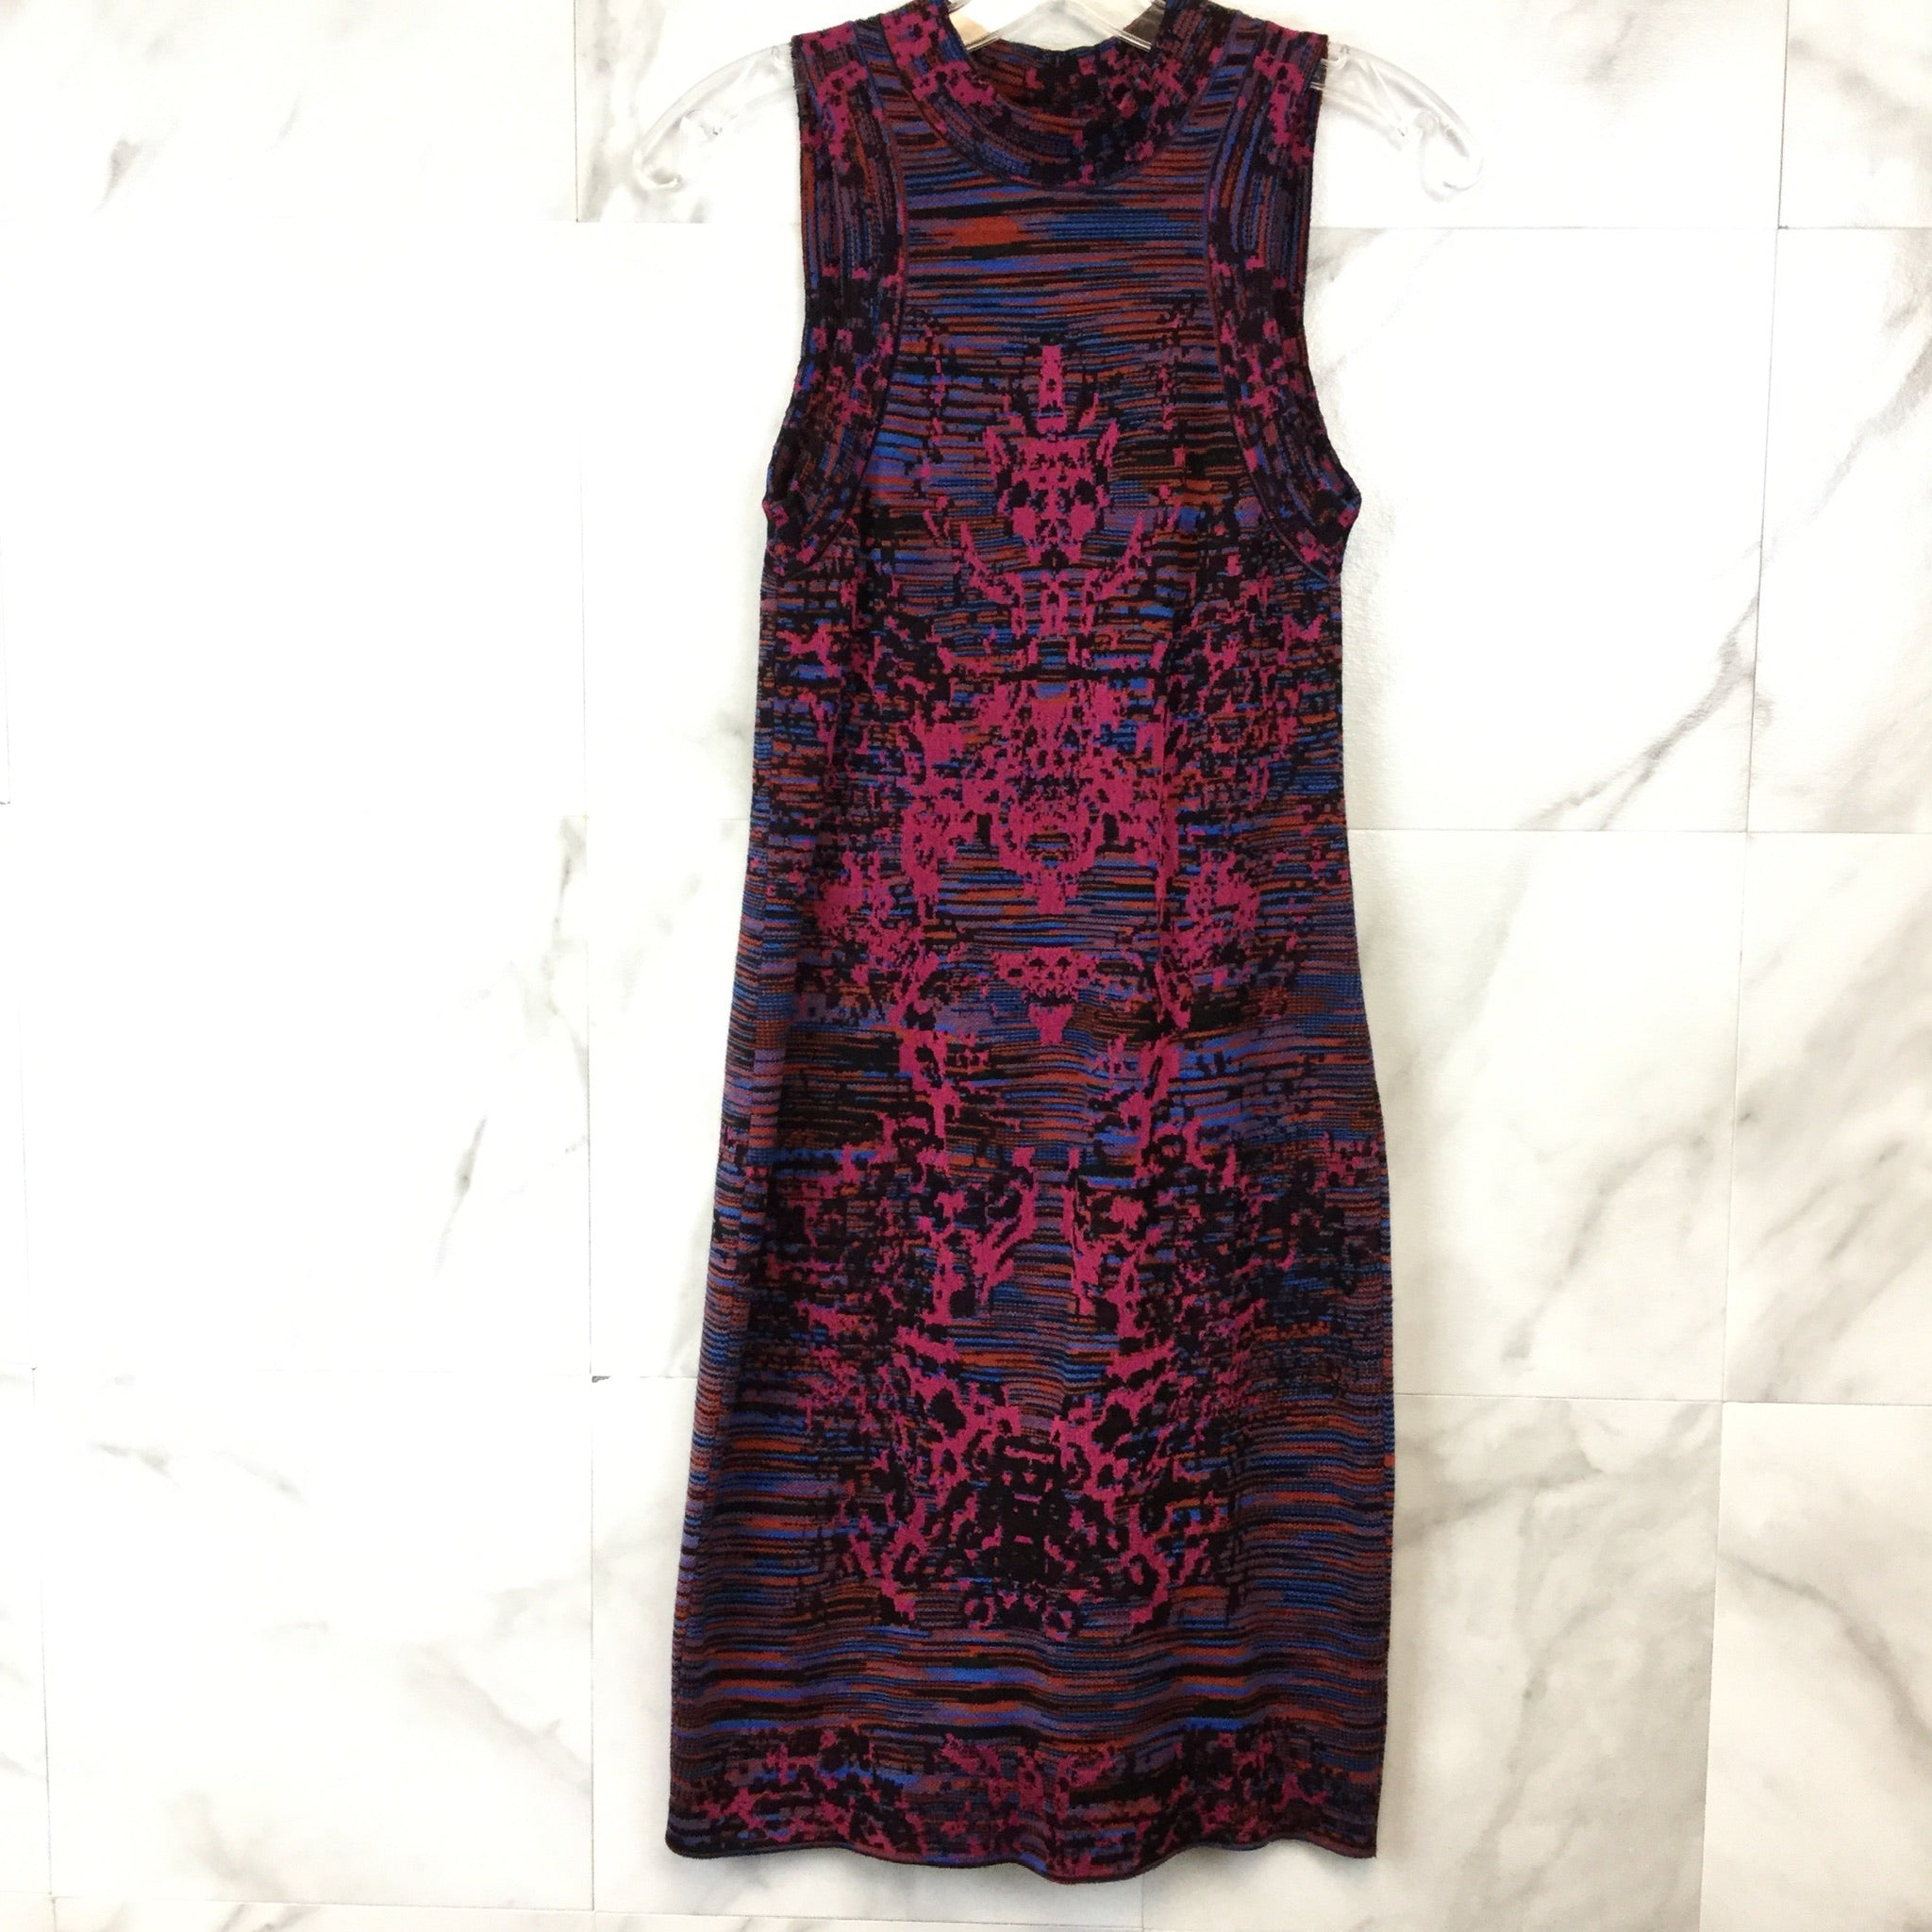 Missoni Knit Tank Dress - S